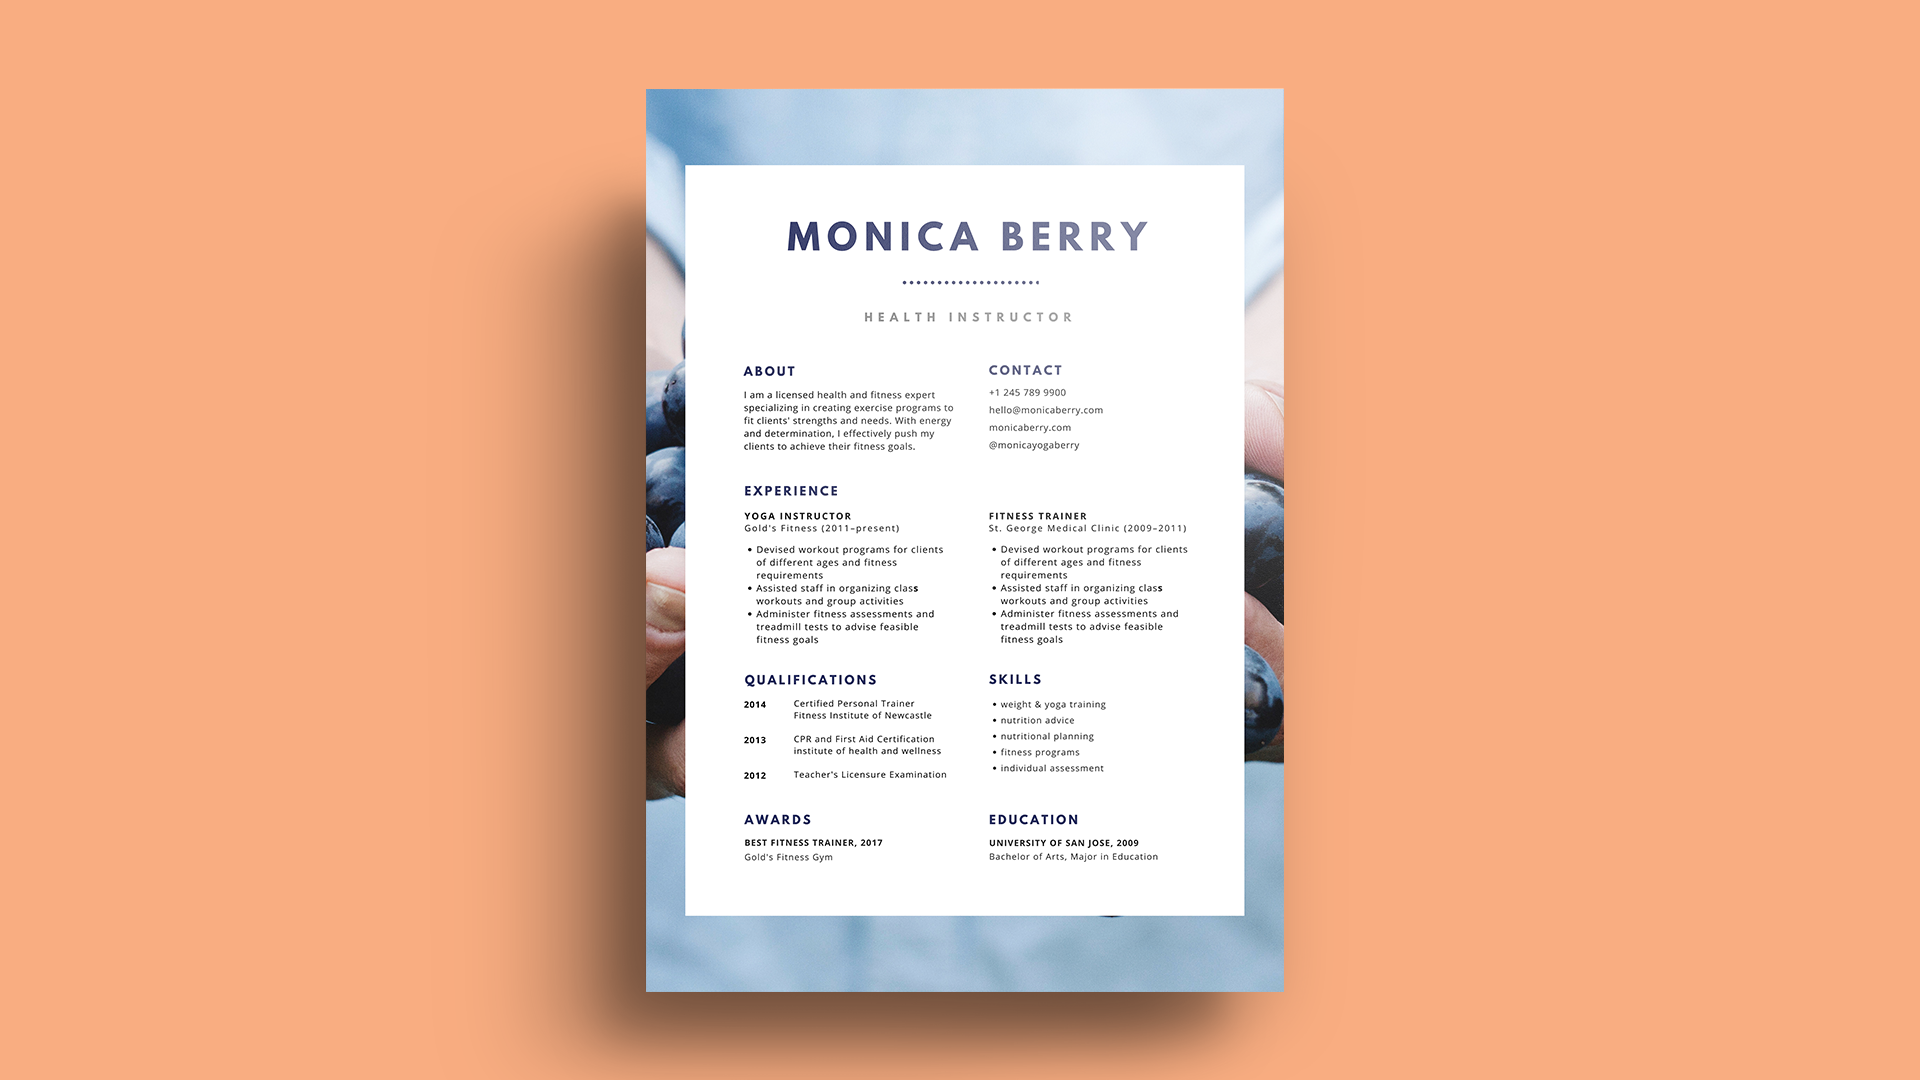 What is the best font for a resume? Inside, we find the